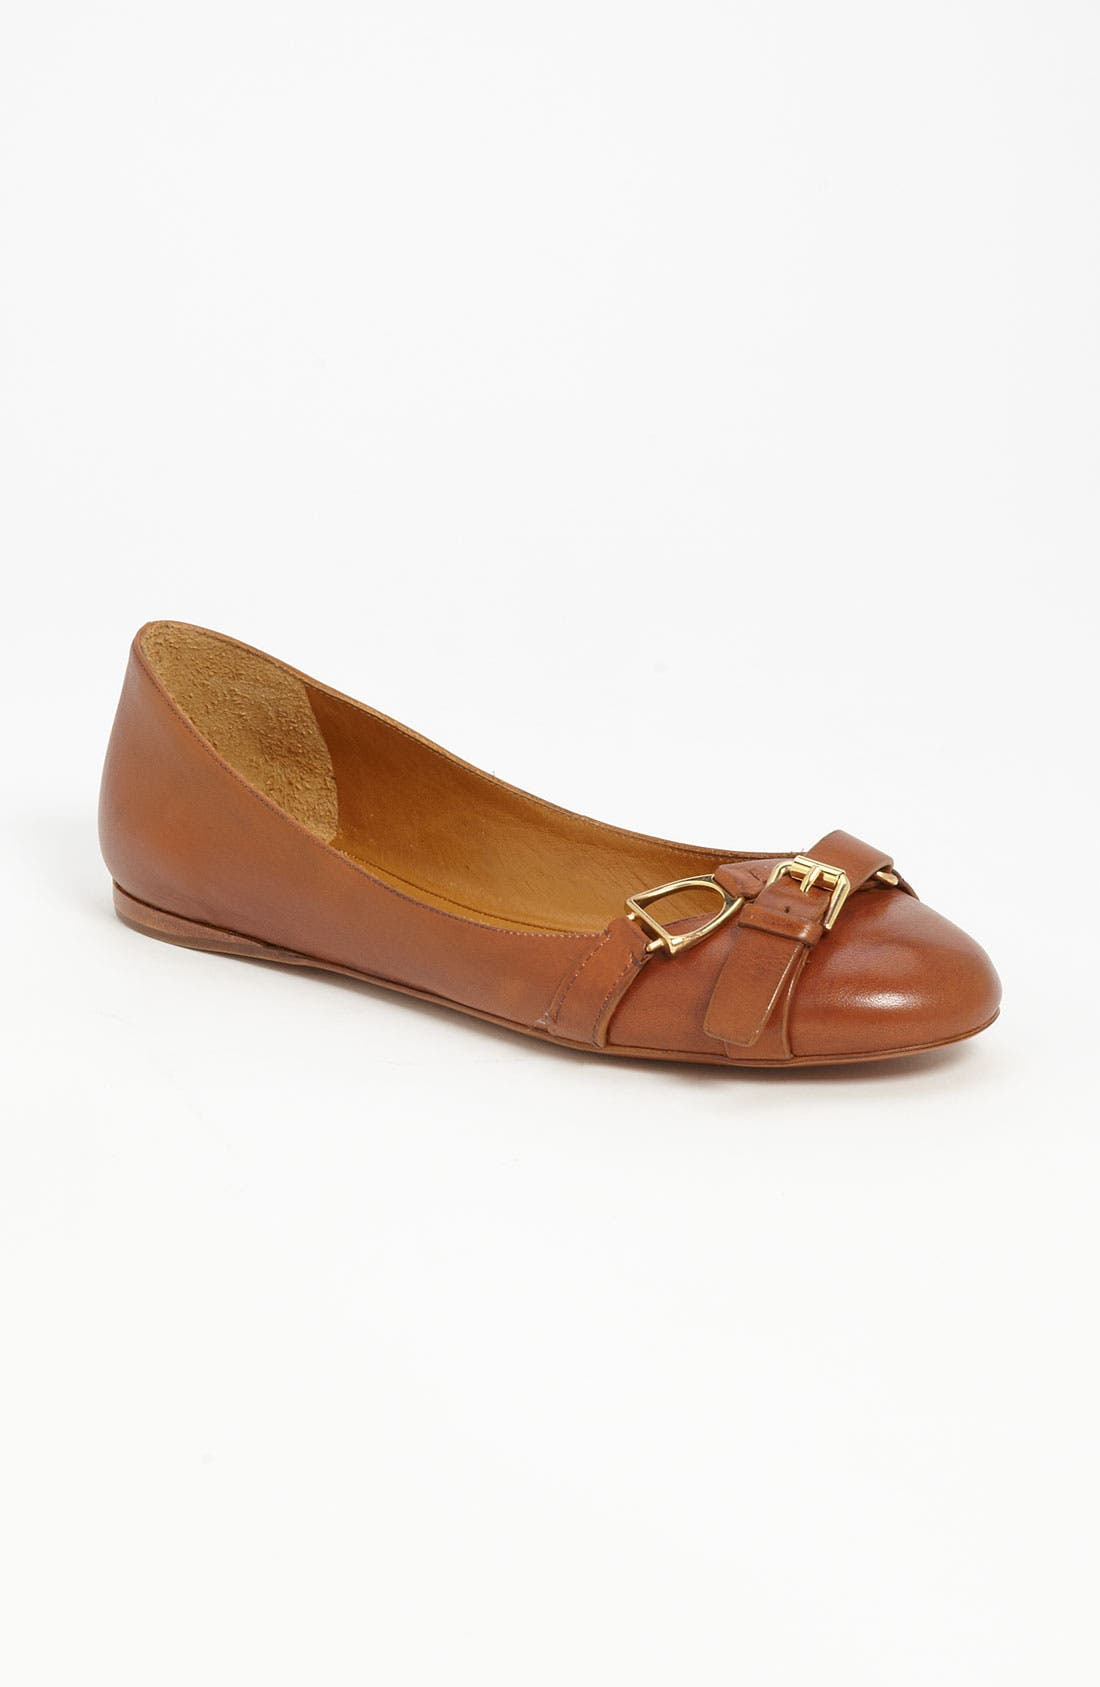 Main Image - Ralph Lauren Collection 'Umina' Flat